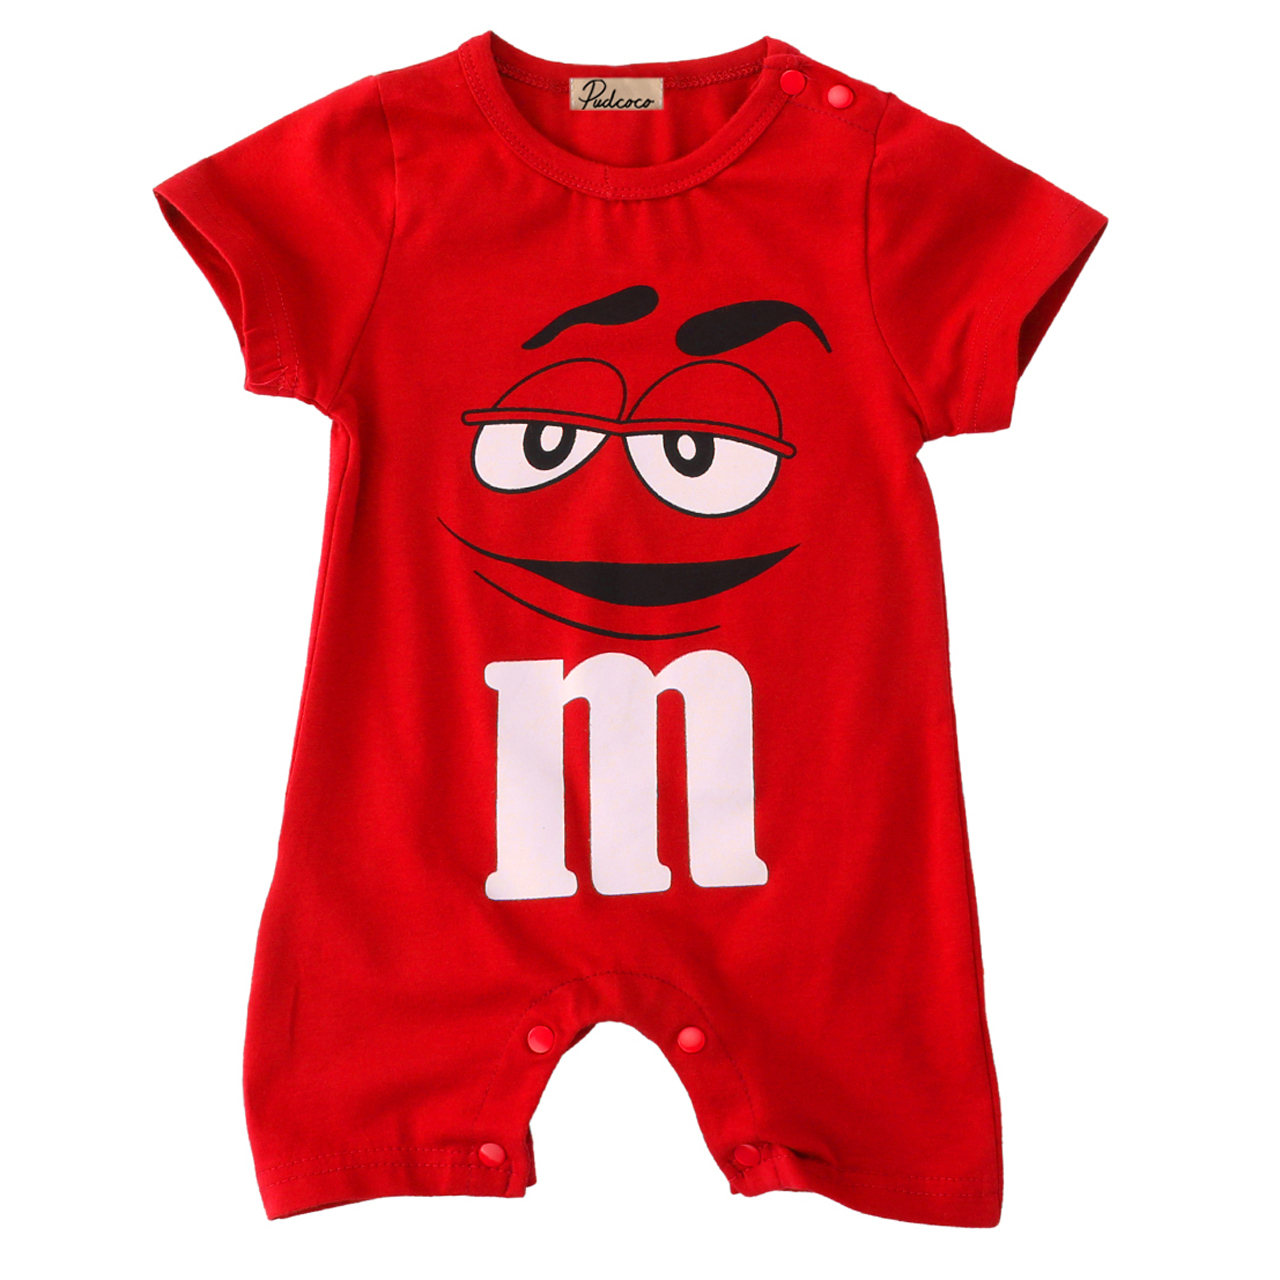 Emmababy Newborn Baby   Romper   Unisex Baby Girls Boys Cartton Cotton Clothes Summer Style Cartoon Short Sleeve One-piece Jumpsuit